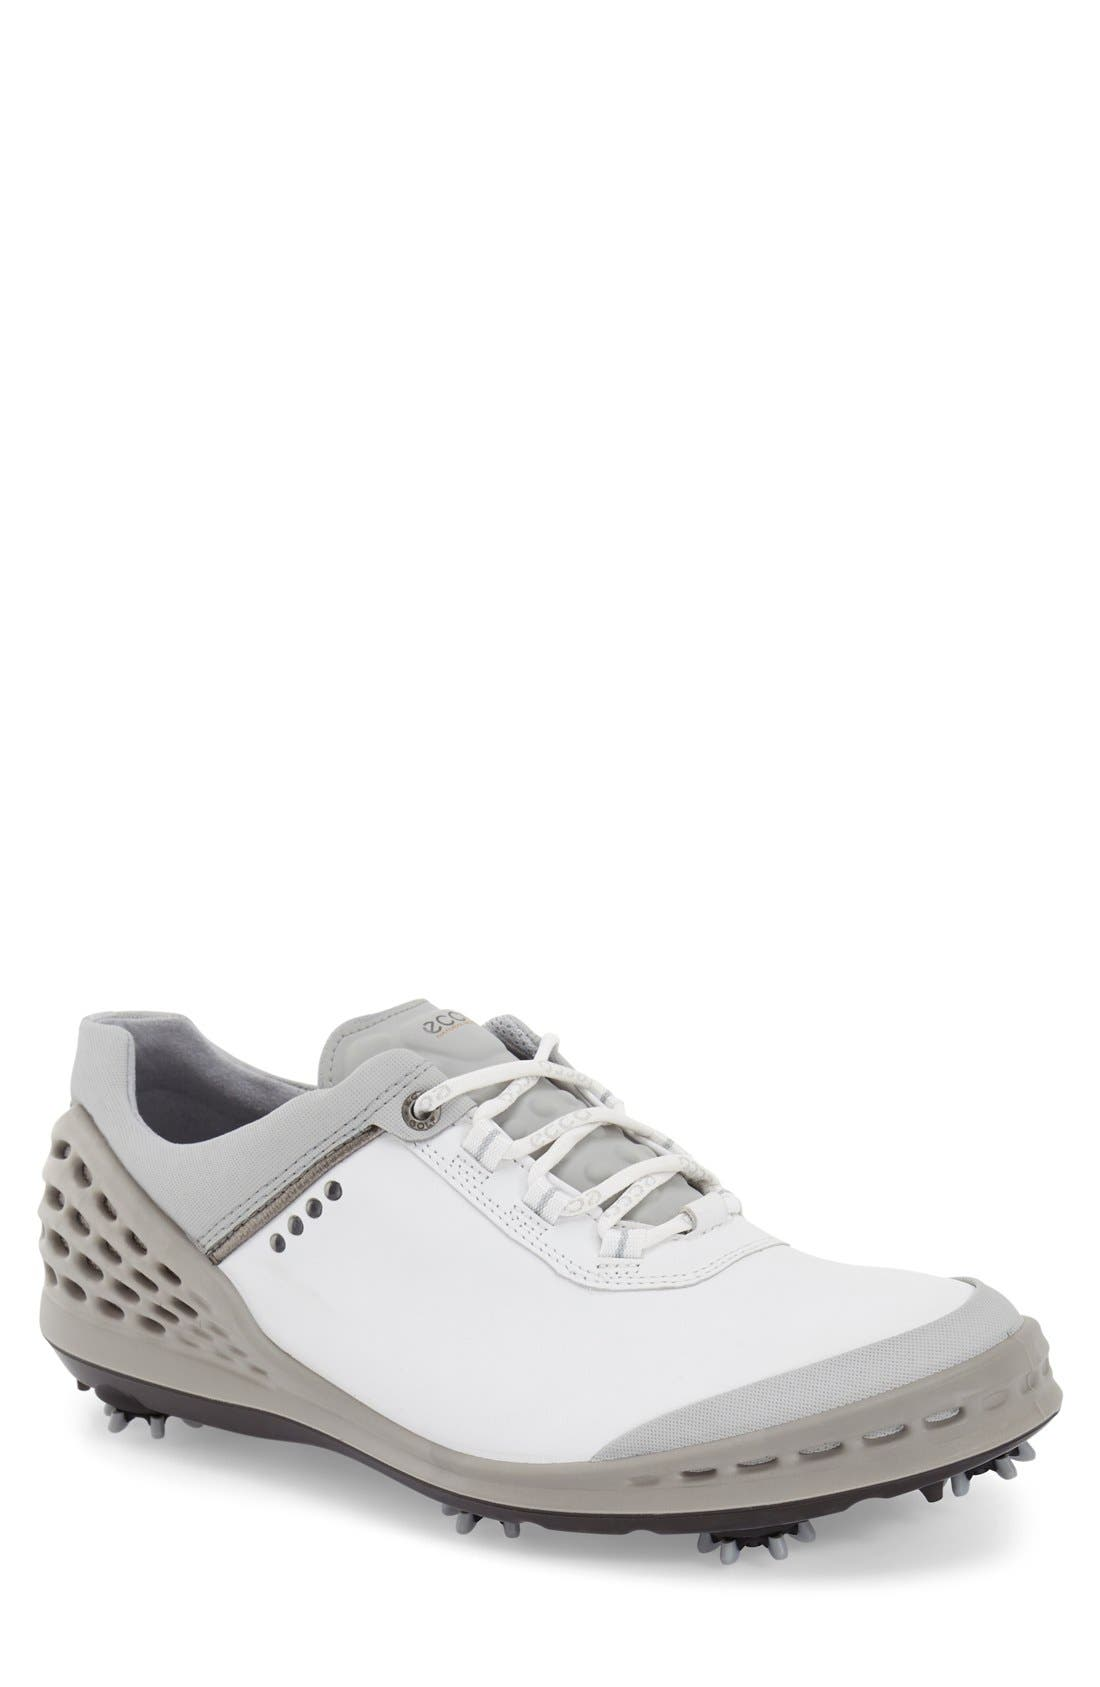 ECCO 'Cage' Golf Shoe